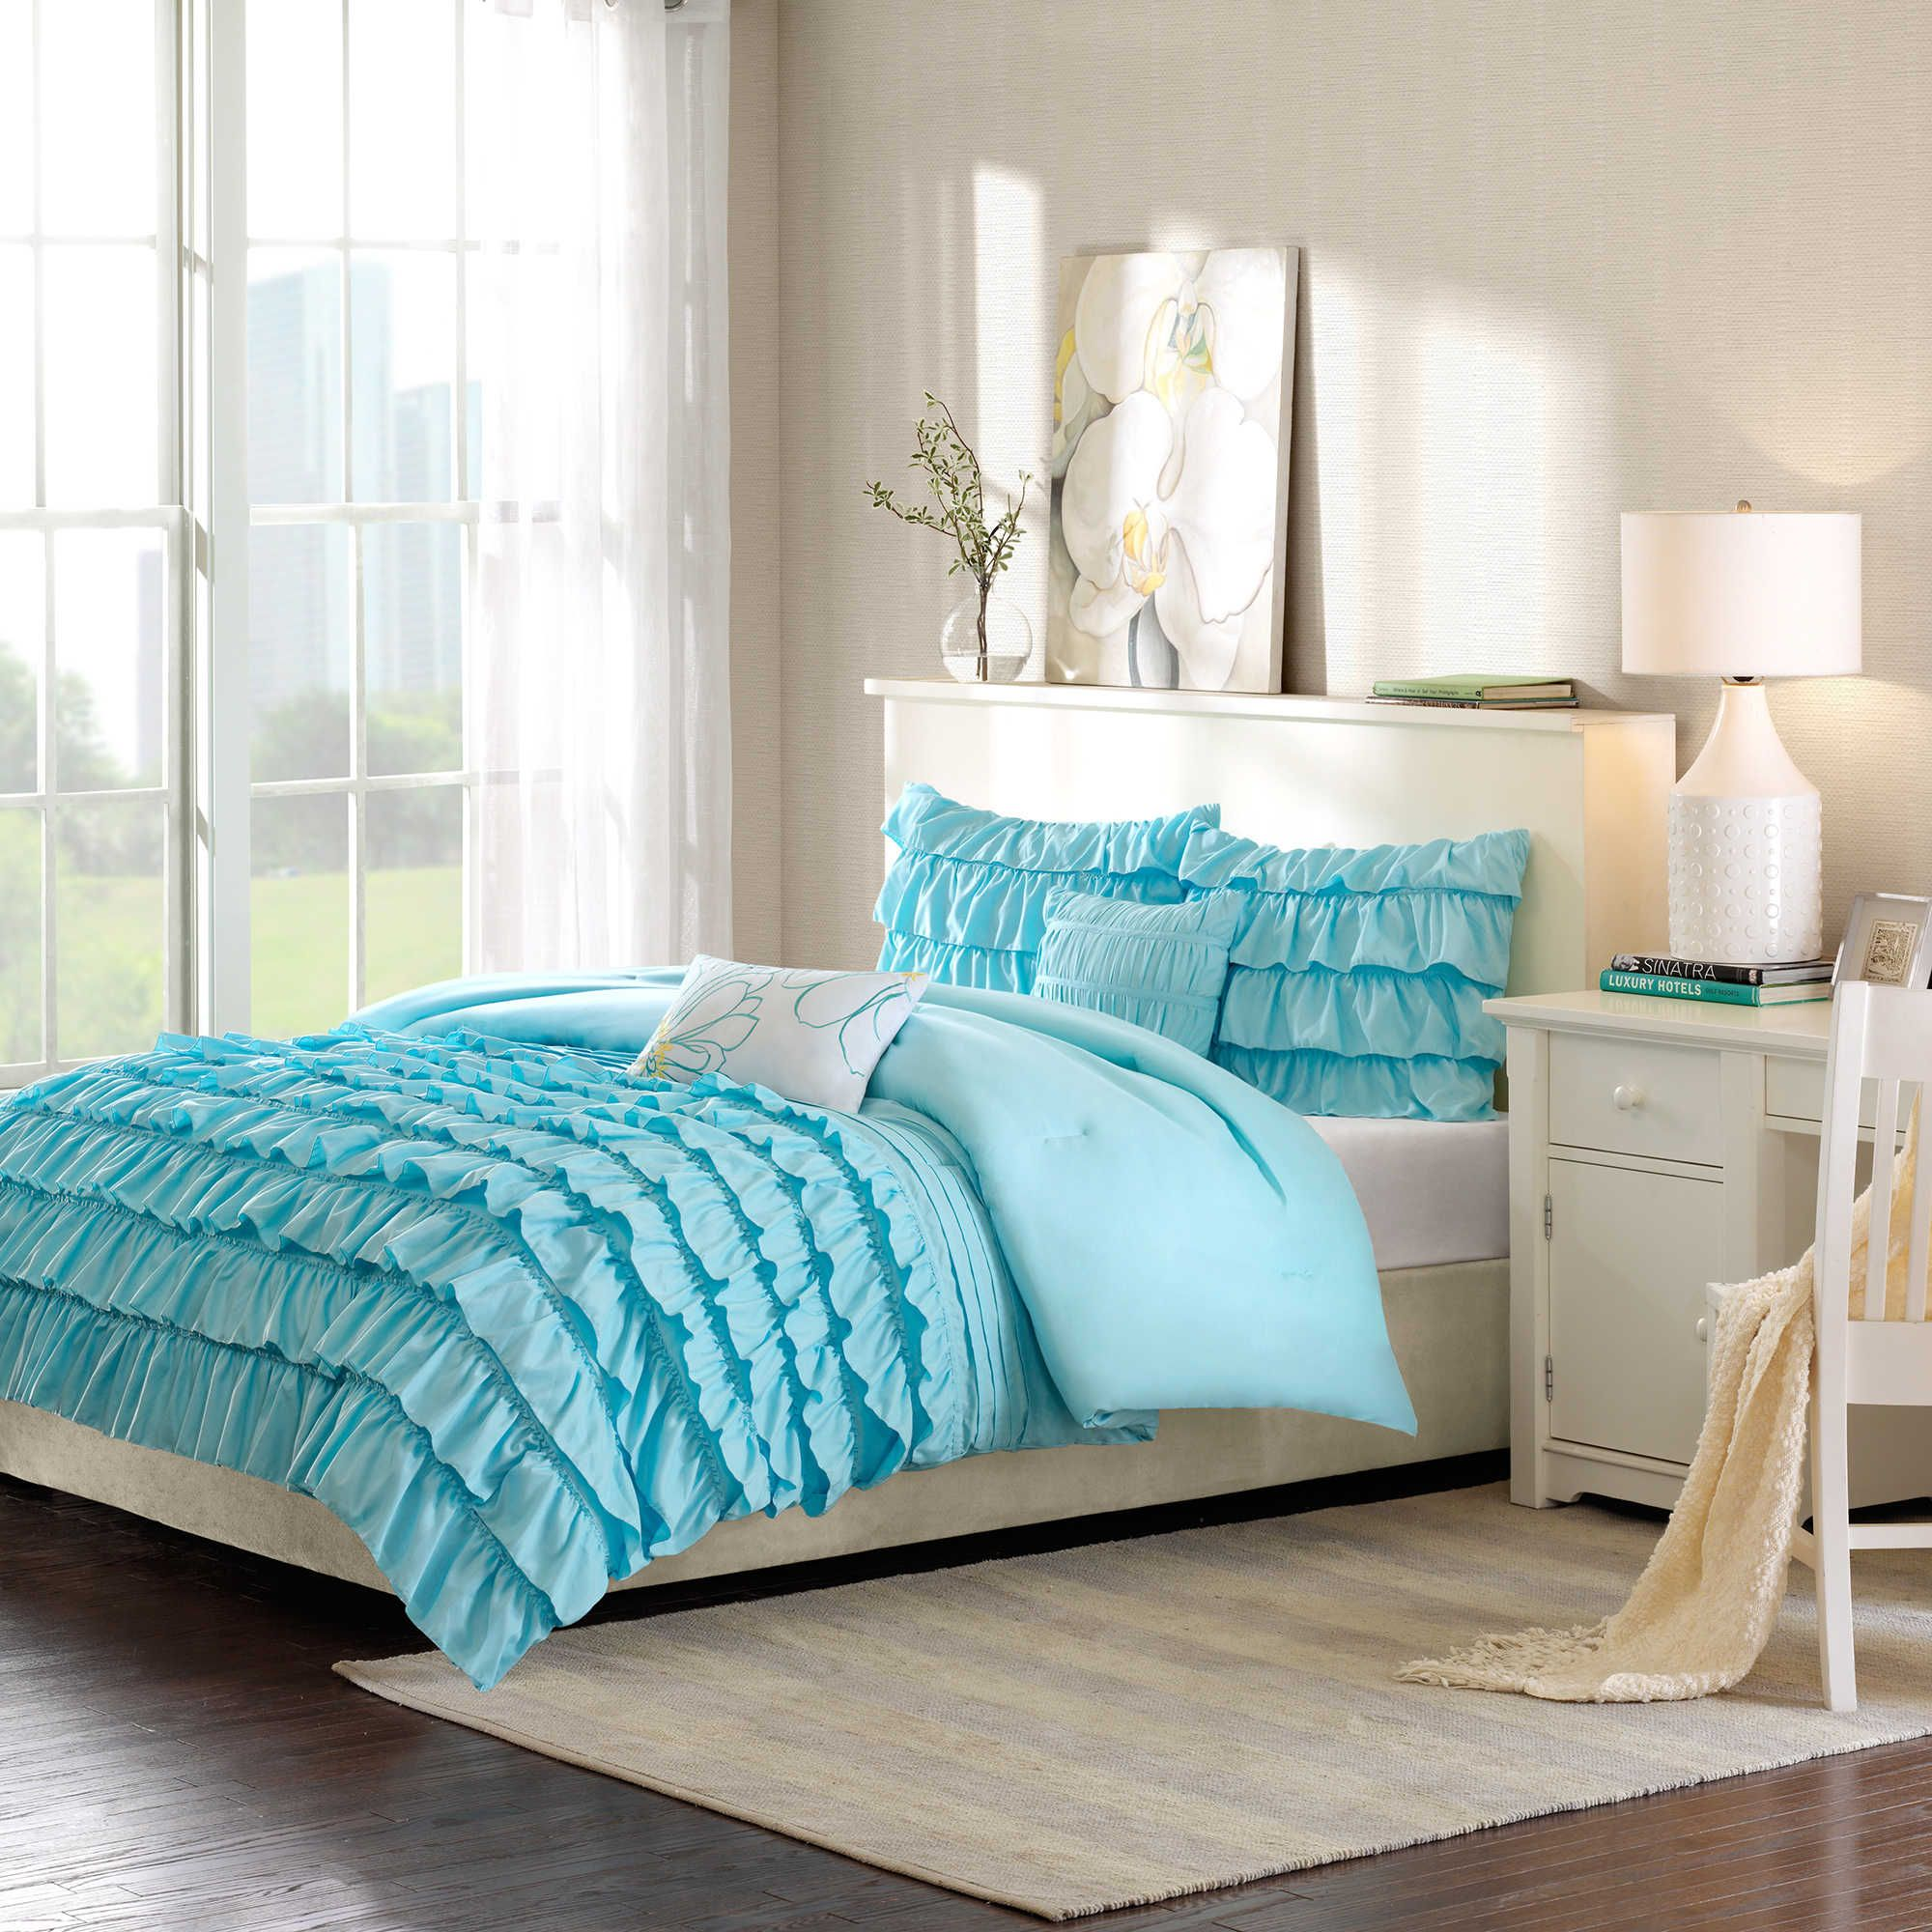 duvets xl cotton comforter light cover sale bedroom white bedspread sets beyond ding of coverlet king bedding canada bath comforters green s bed and cal on size nice full twin blue covers duvet